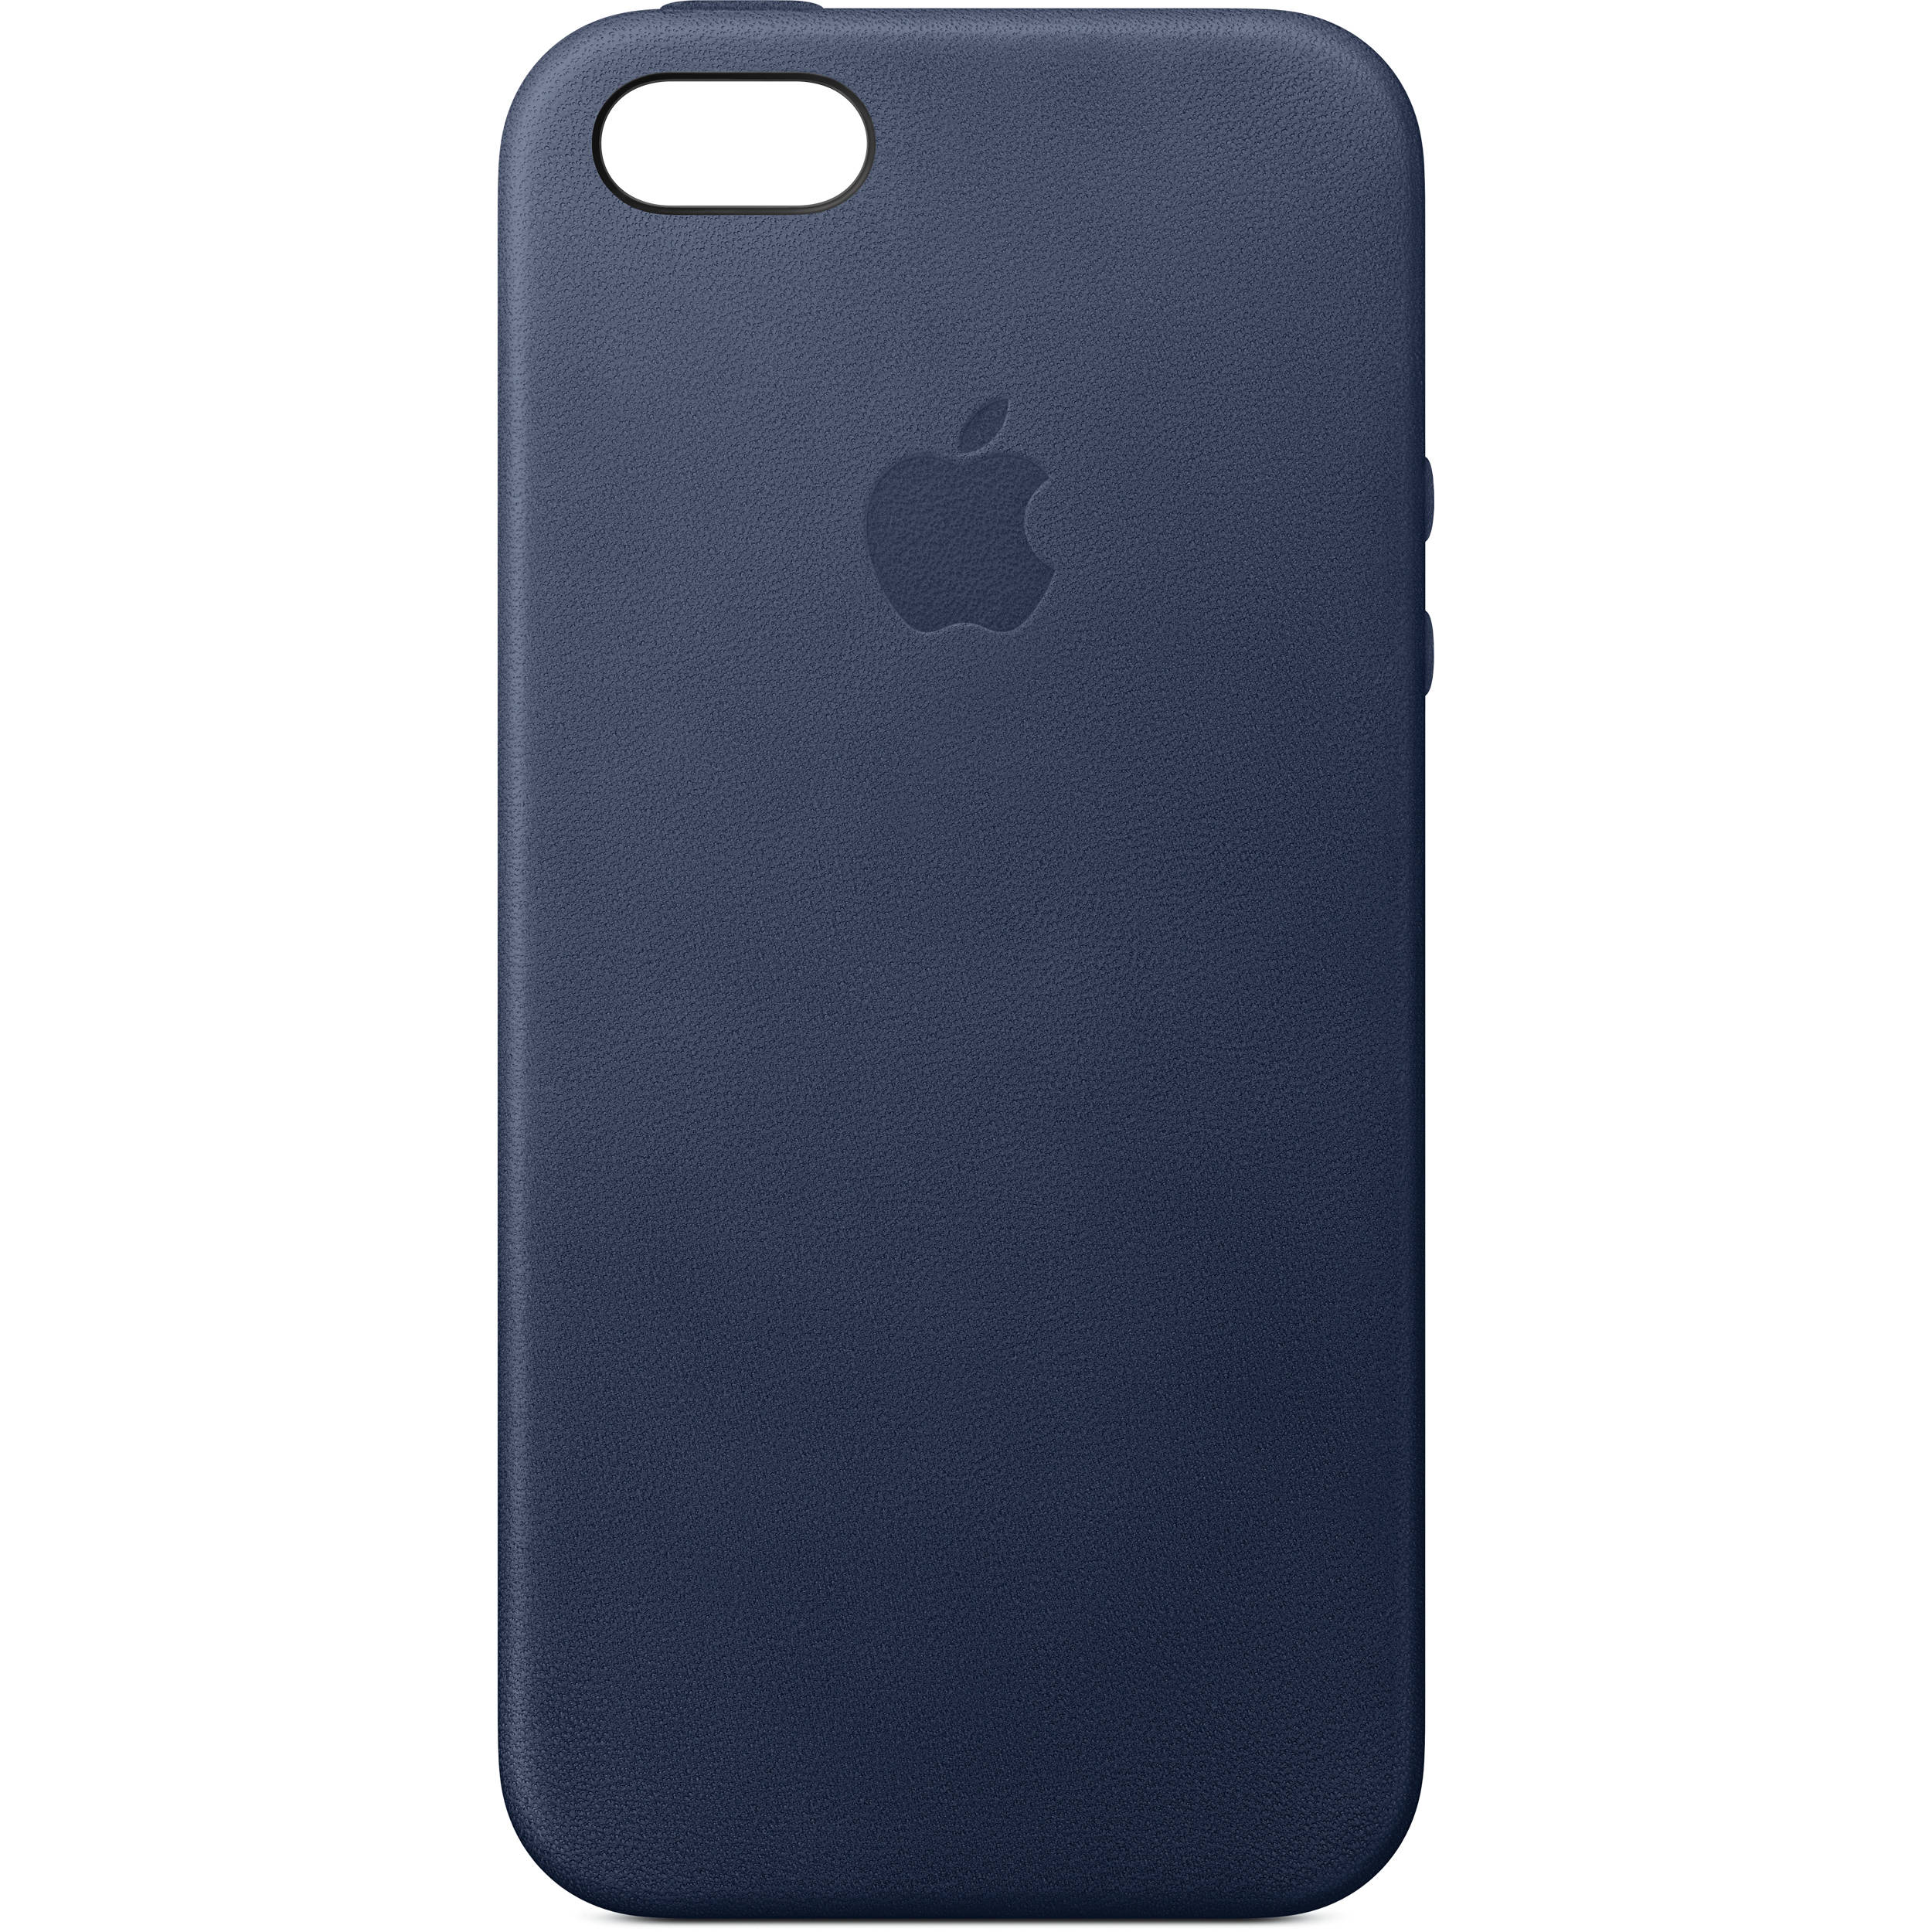 separation shoes 8ccb6 ea28c Apple iPhone 5/5s/SE Leather Case (Midnight Blue)